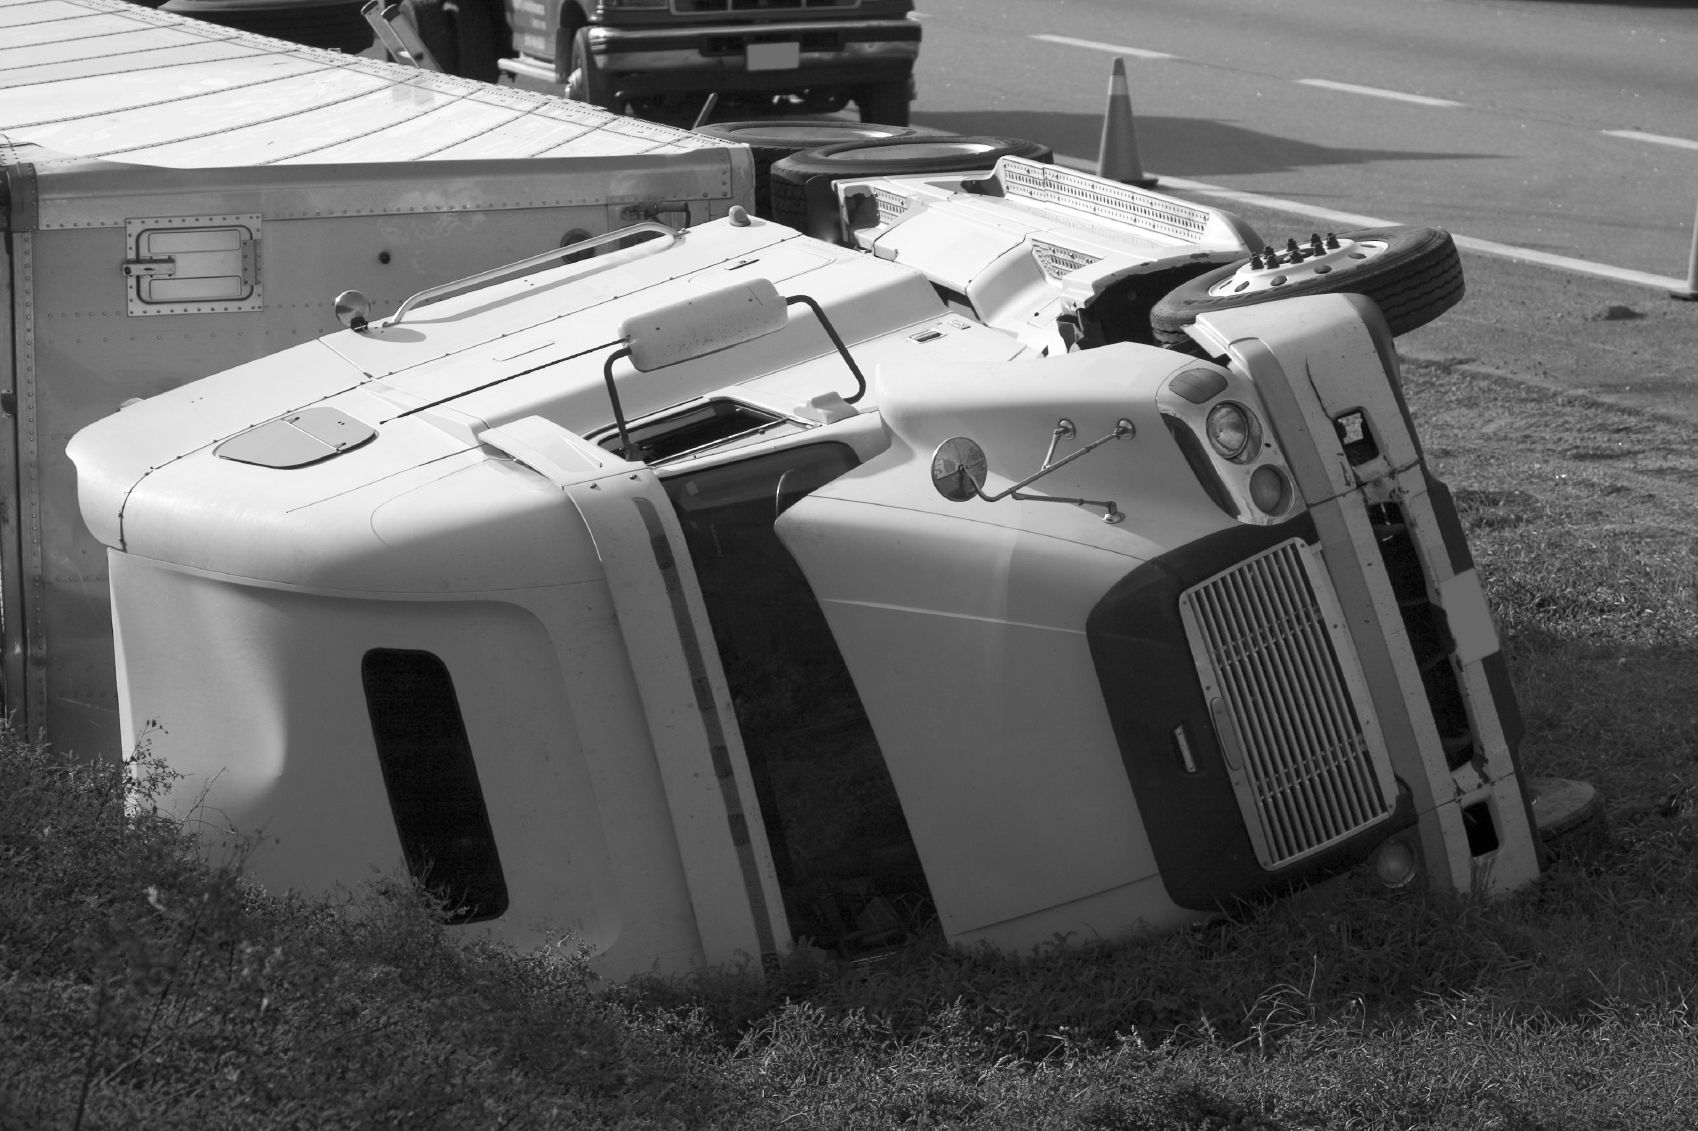 A rollover semi-truck accident